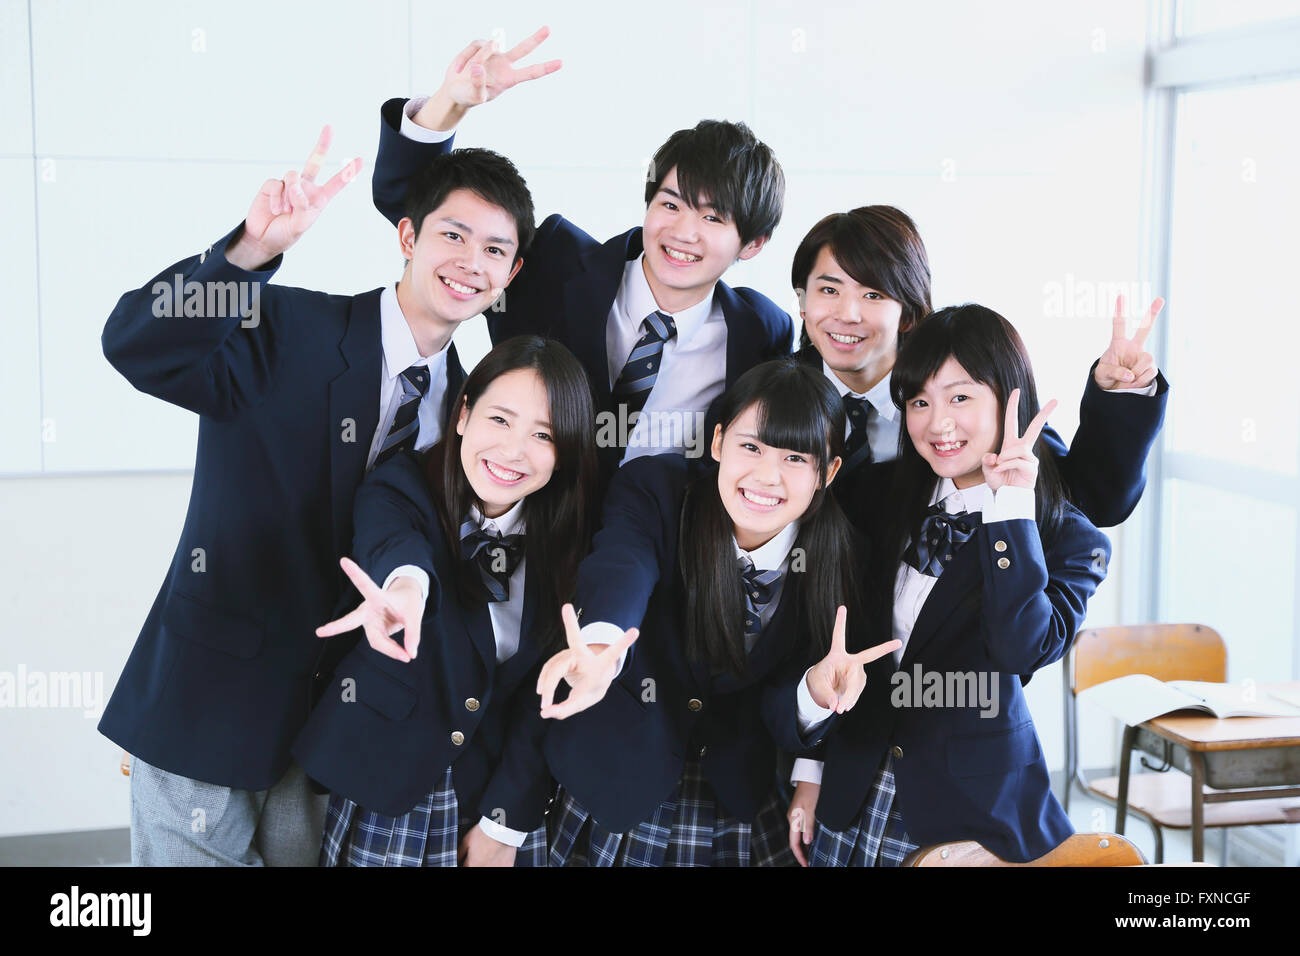 Japanese High School Student Taking Group Shot In